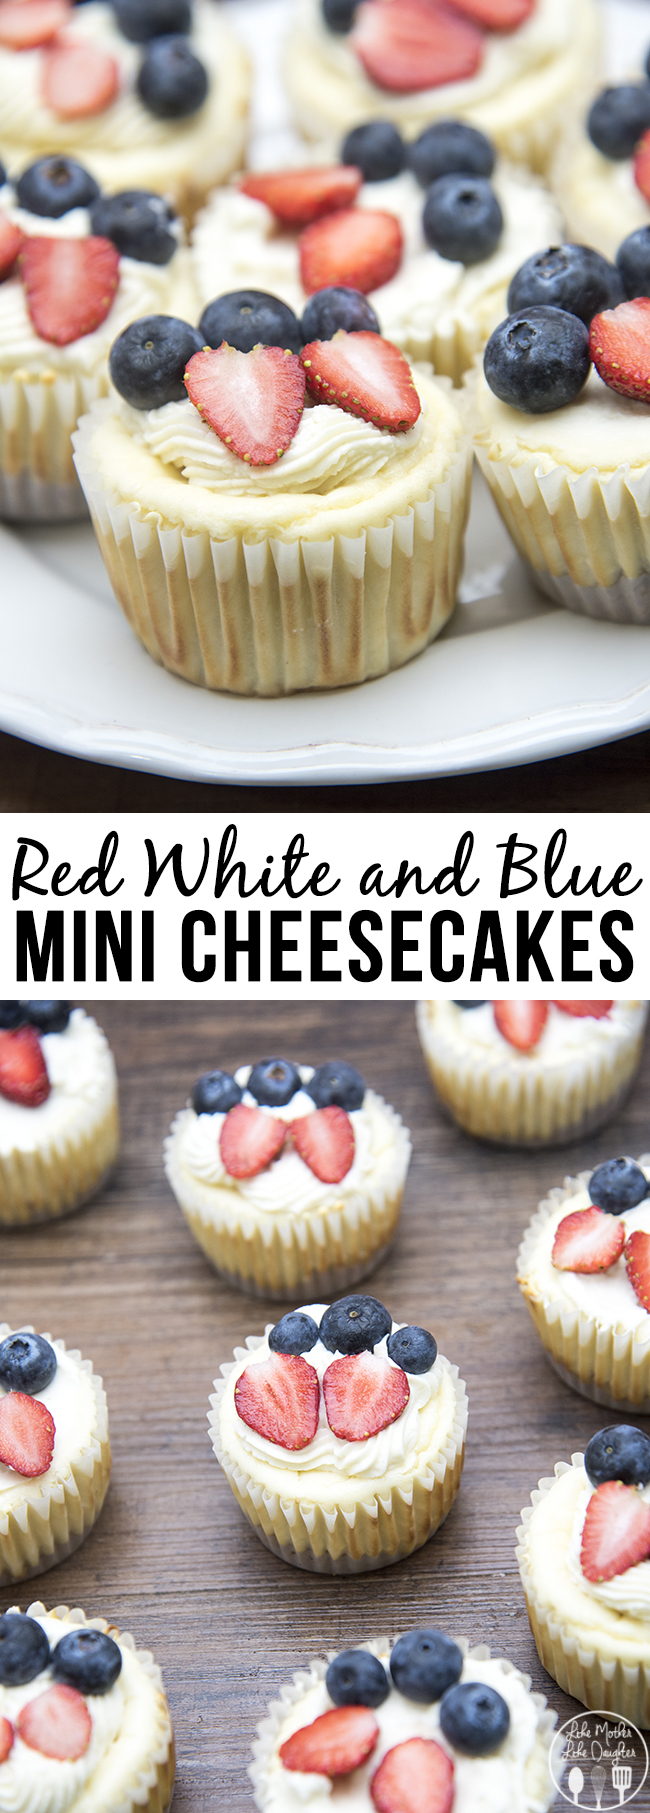 Red White and Blue Mini Cheesecakes - These adorable mini cheesecakes are delicious cheesecakes with a simple graham cracker crust, topped with homemade whipped cream, fresh strawberries and fresh blueberries. The perfect fourth of july dessert!